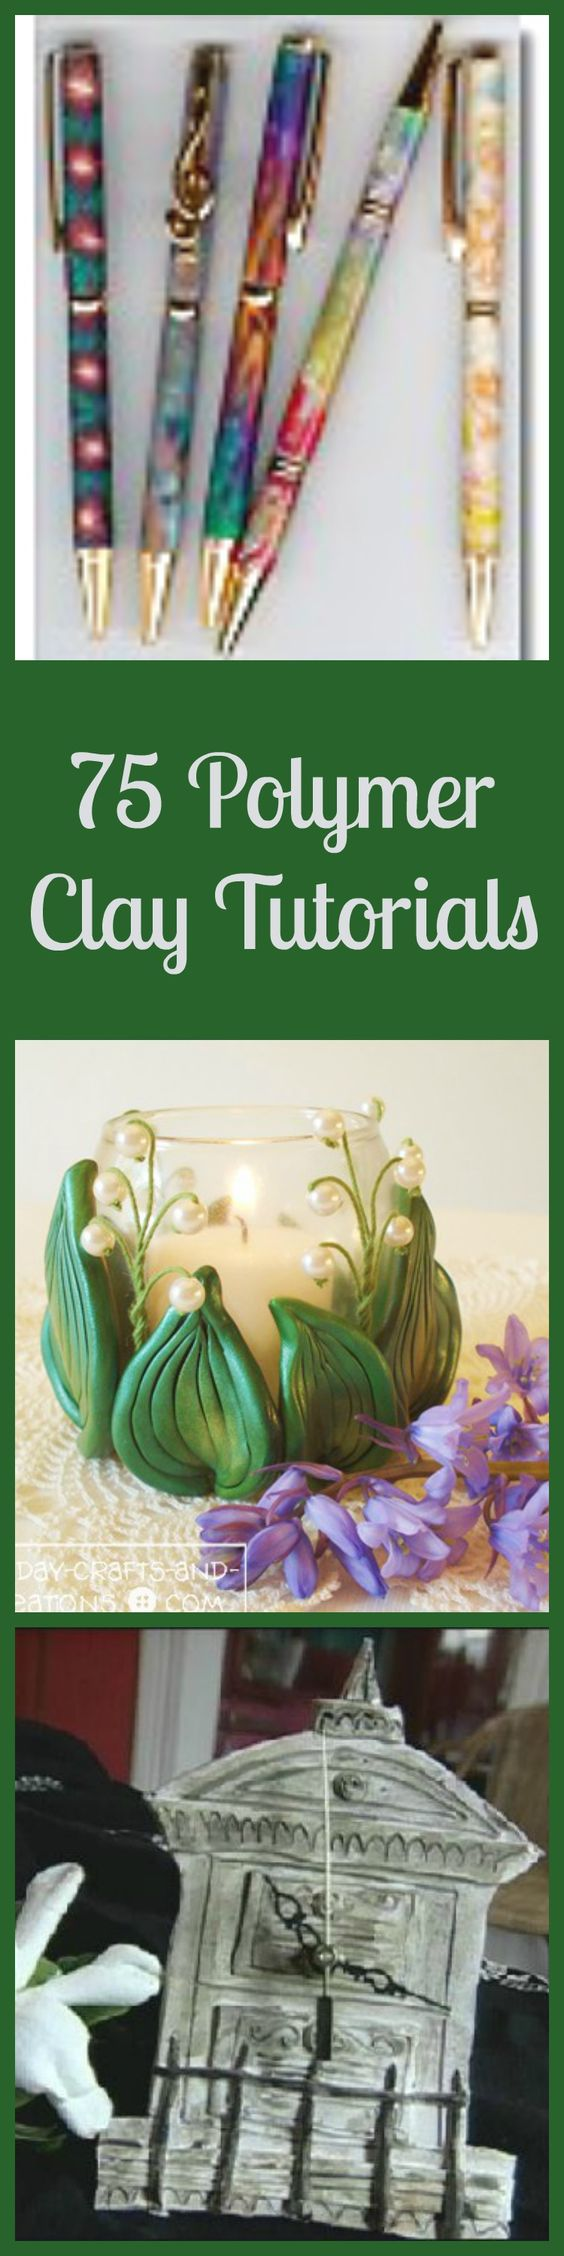 Re-Pin By @siliconem -  75 Polymer Clay Tutorials - one of these is of a wedding chapel - loved it! http://weddingmusicproject.bandcamp.com/album/brides-guide-to-classical-wedding-music